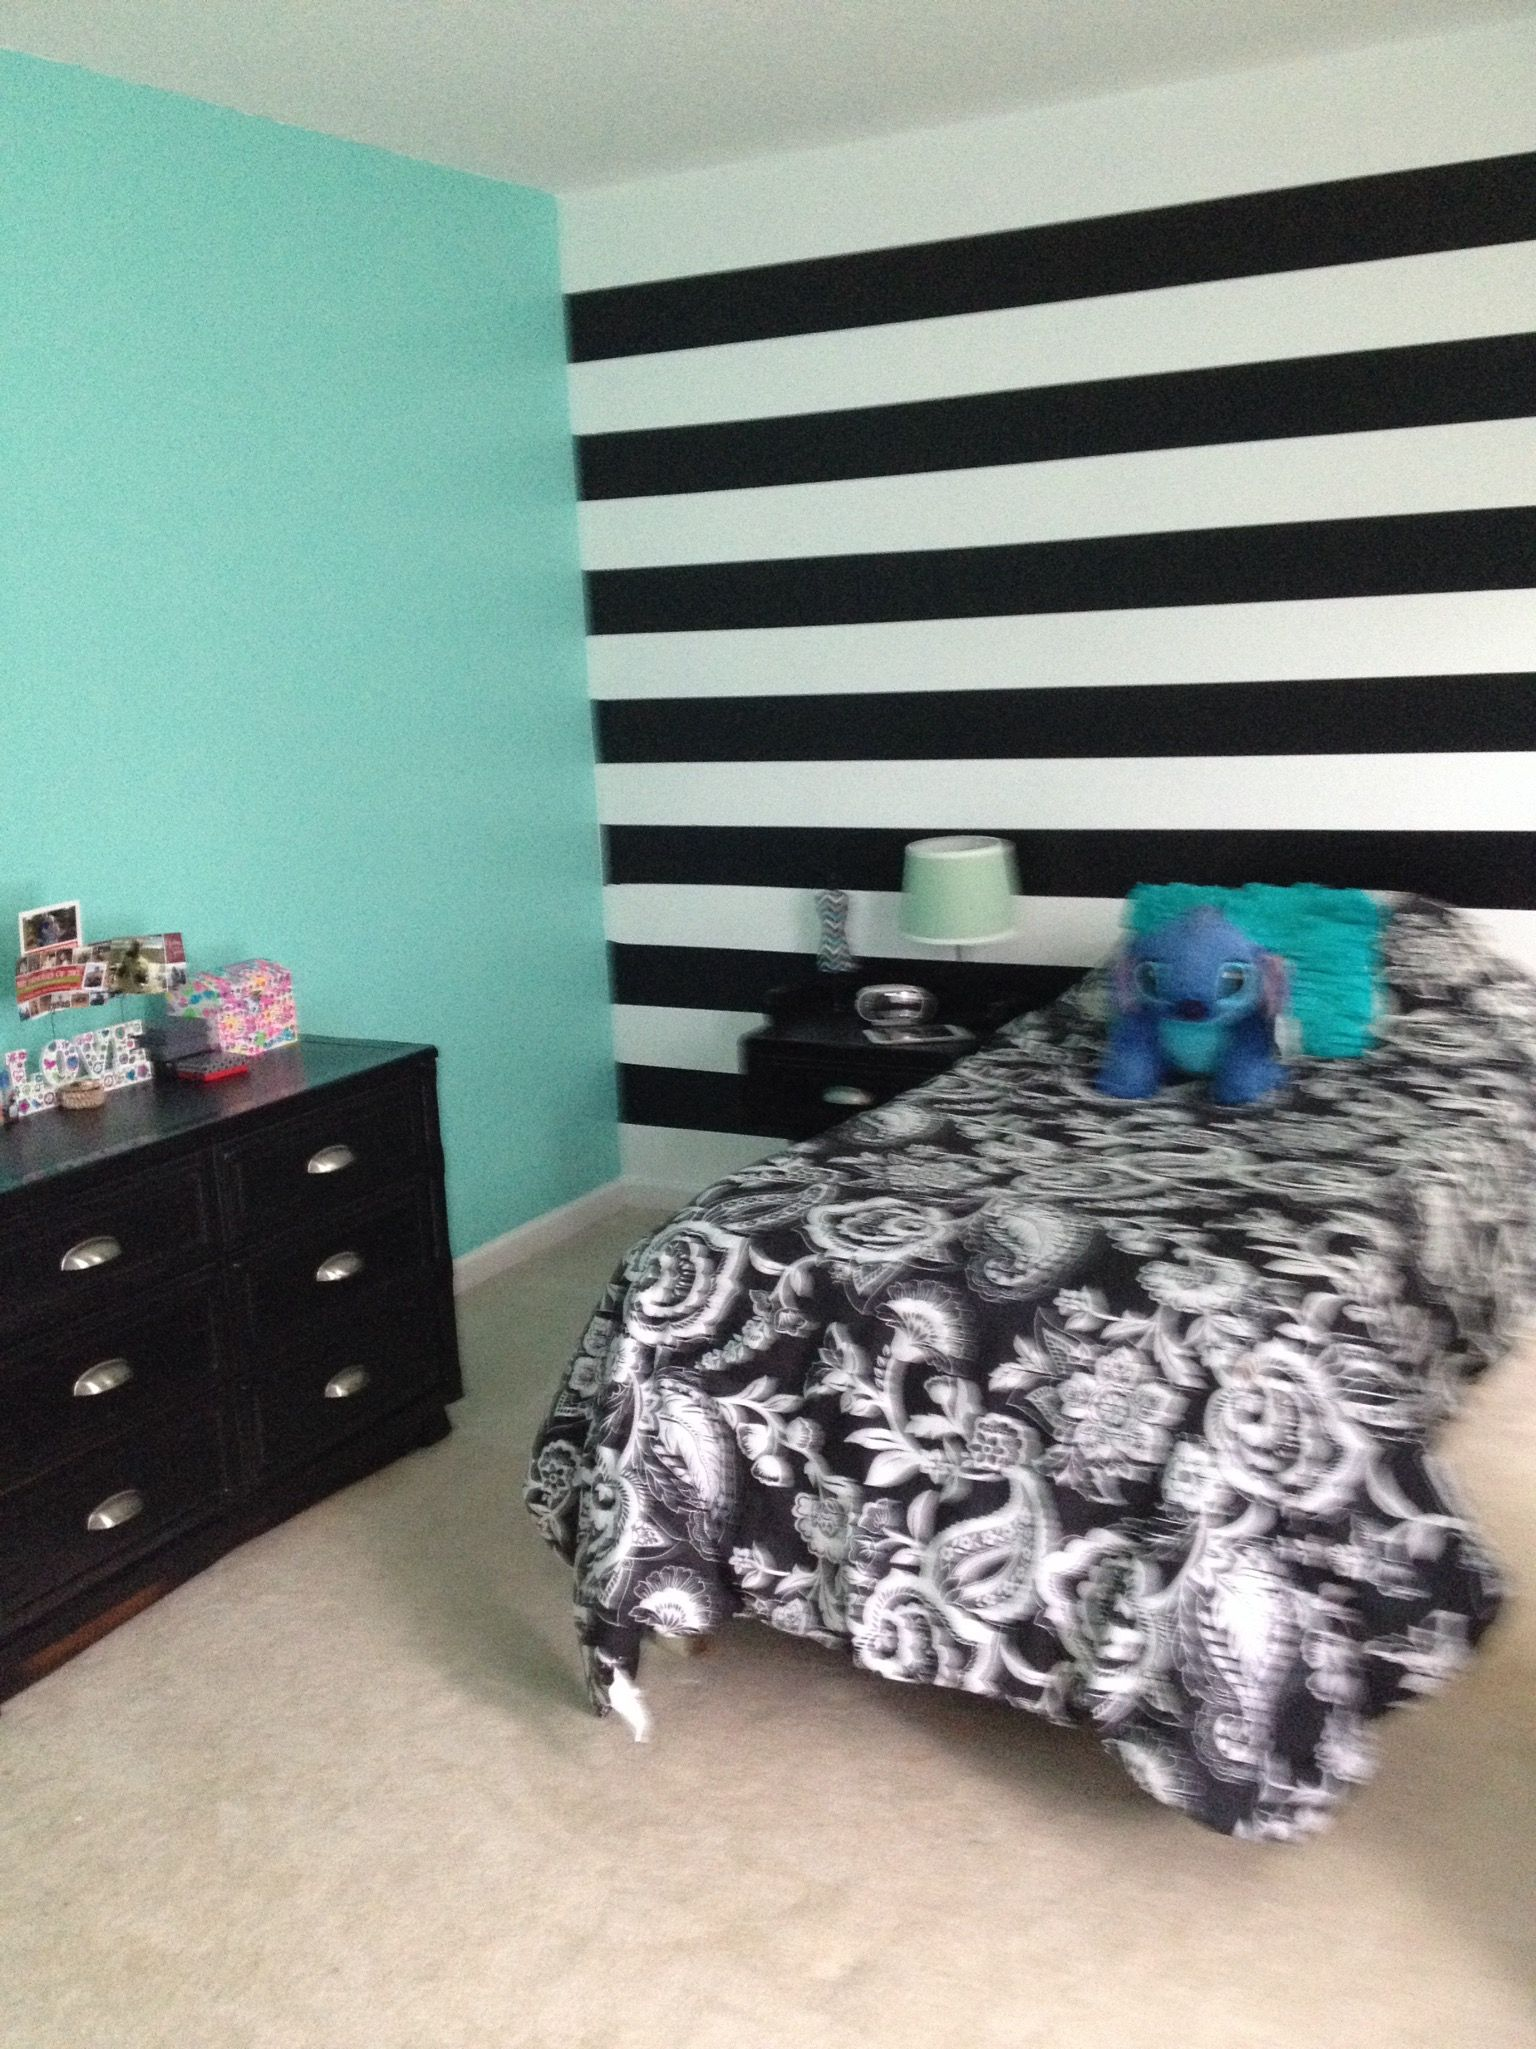 Turquoise On Three Walls Black And White Horizontal Stripe On One Accented With Black White And Sha Striped Walls Bedroom Striped Accent Walls Teal Bedroom